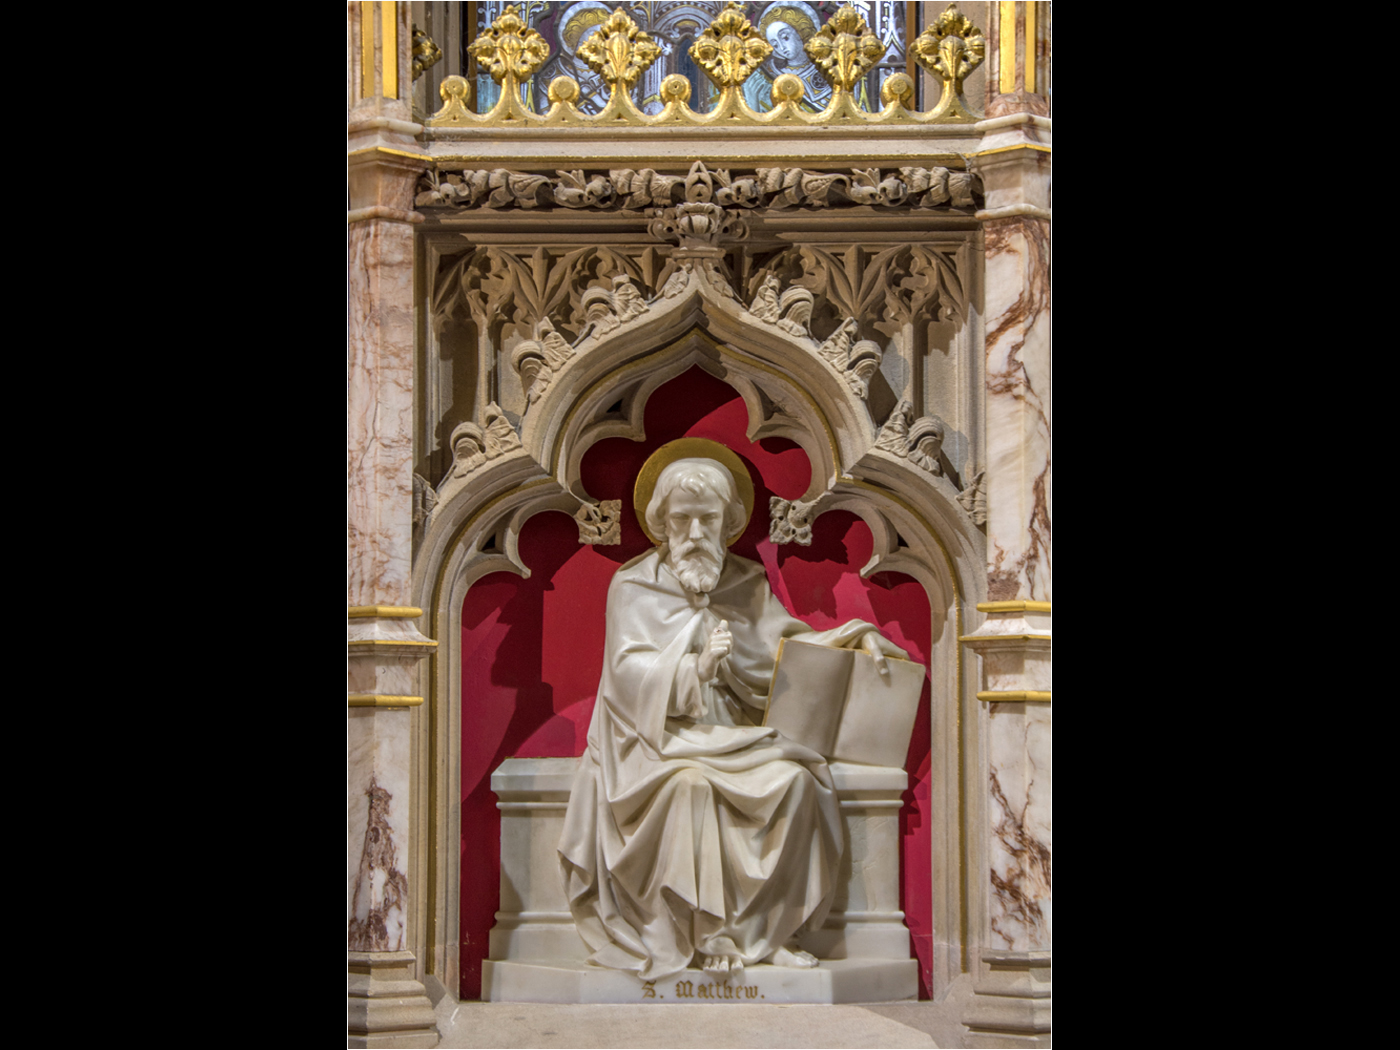 3rd Place - Sculptor of St Mathew stands on the High Altar of St James Church in Louth, at a height of 60cm and was carved by Samuel Ruddock by Chris Moncrieff LBAPA, BPE3, CPAGB, AFIAP